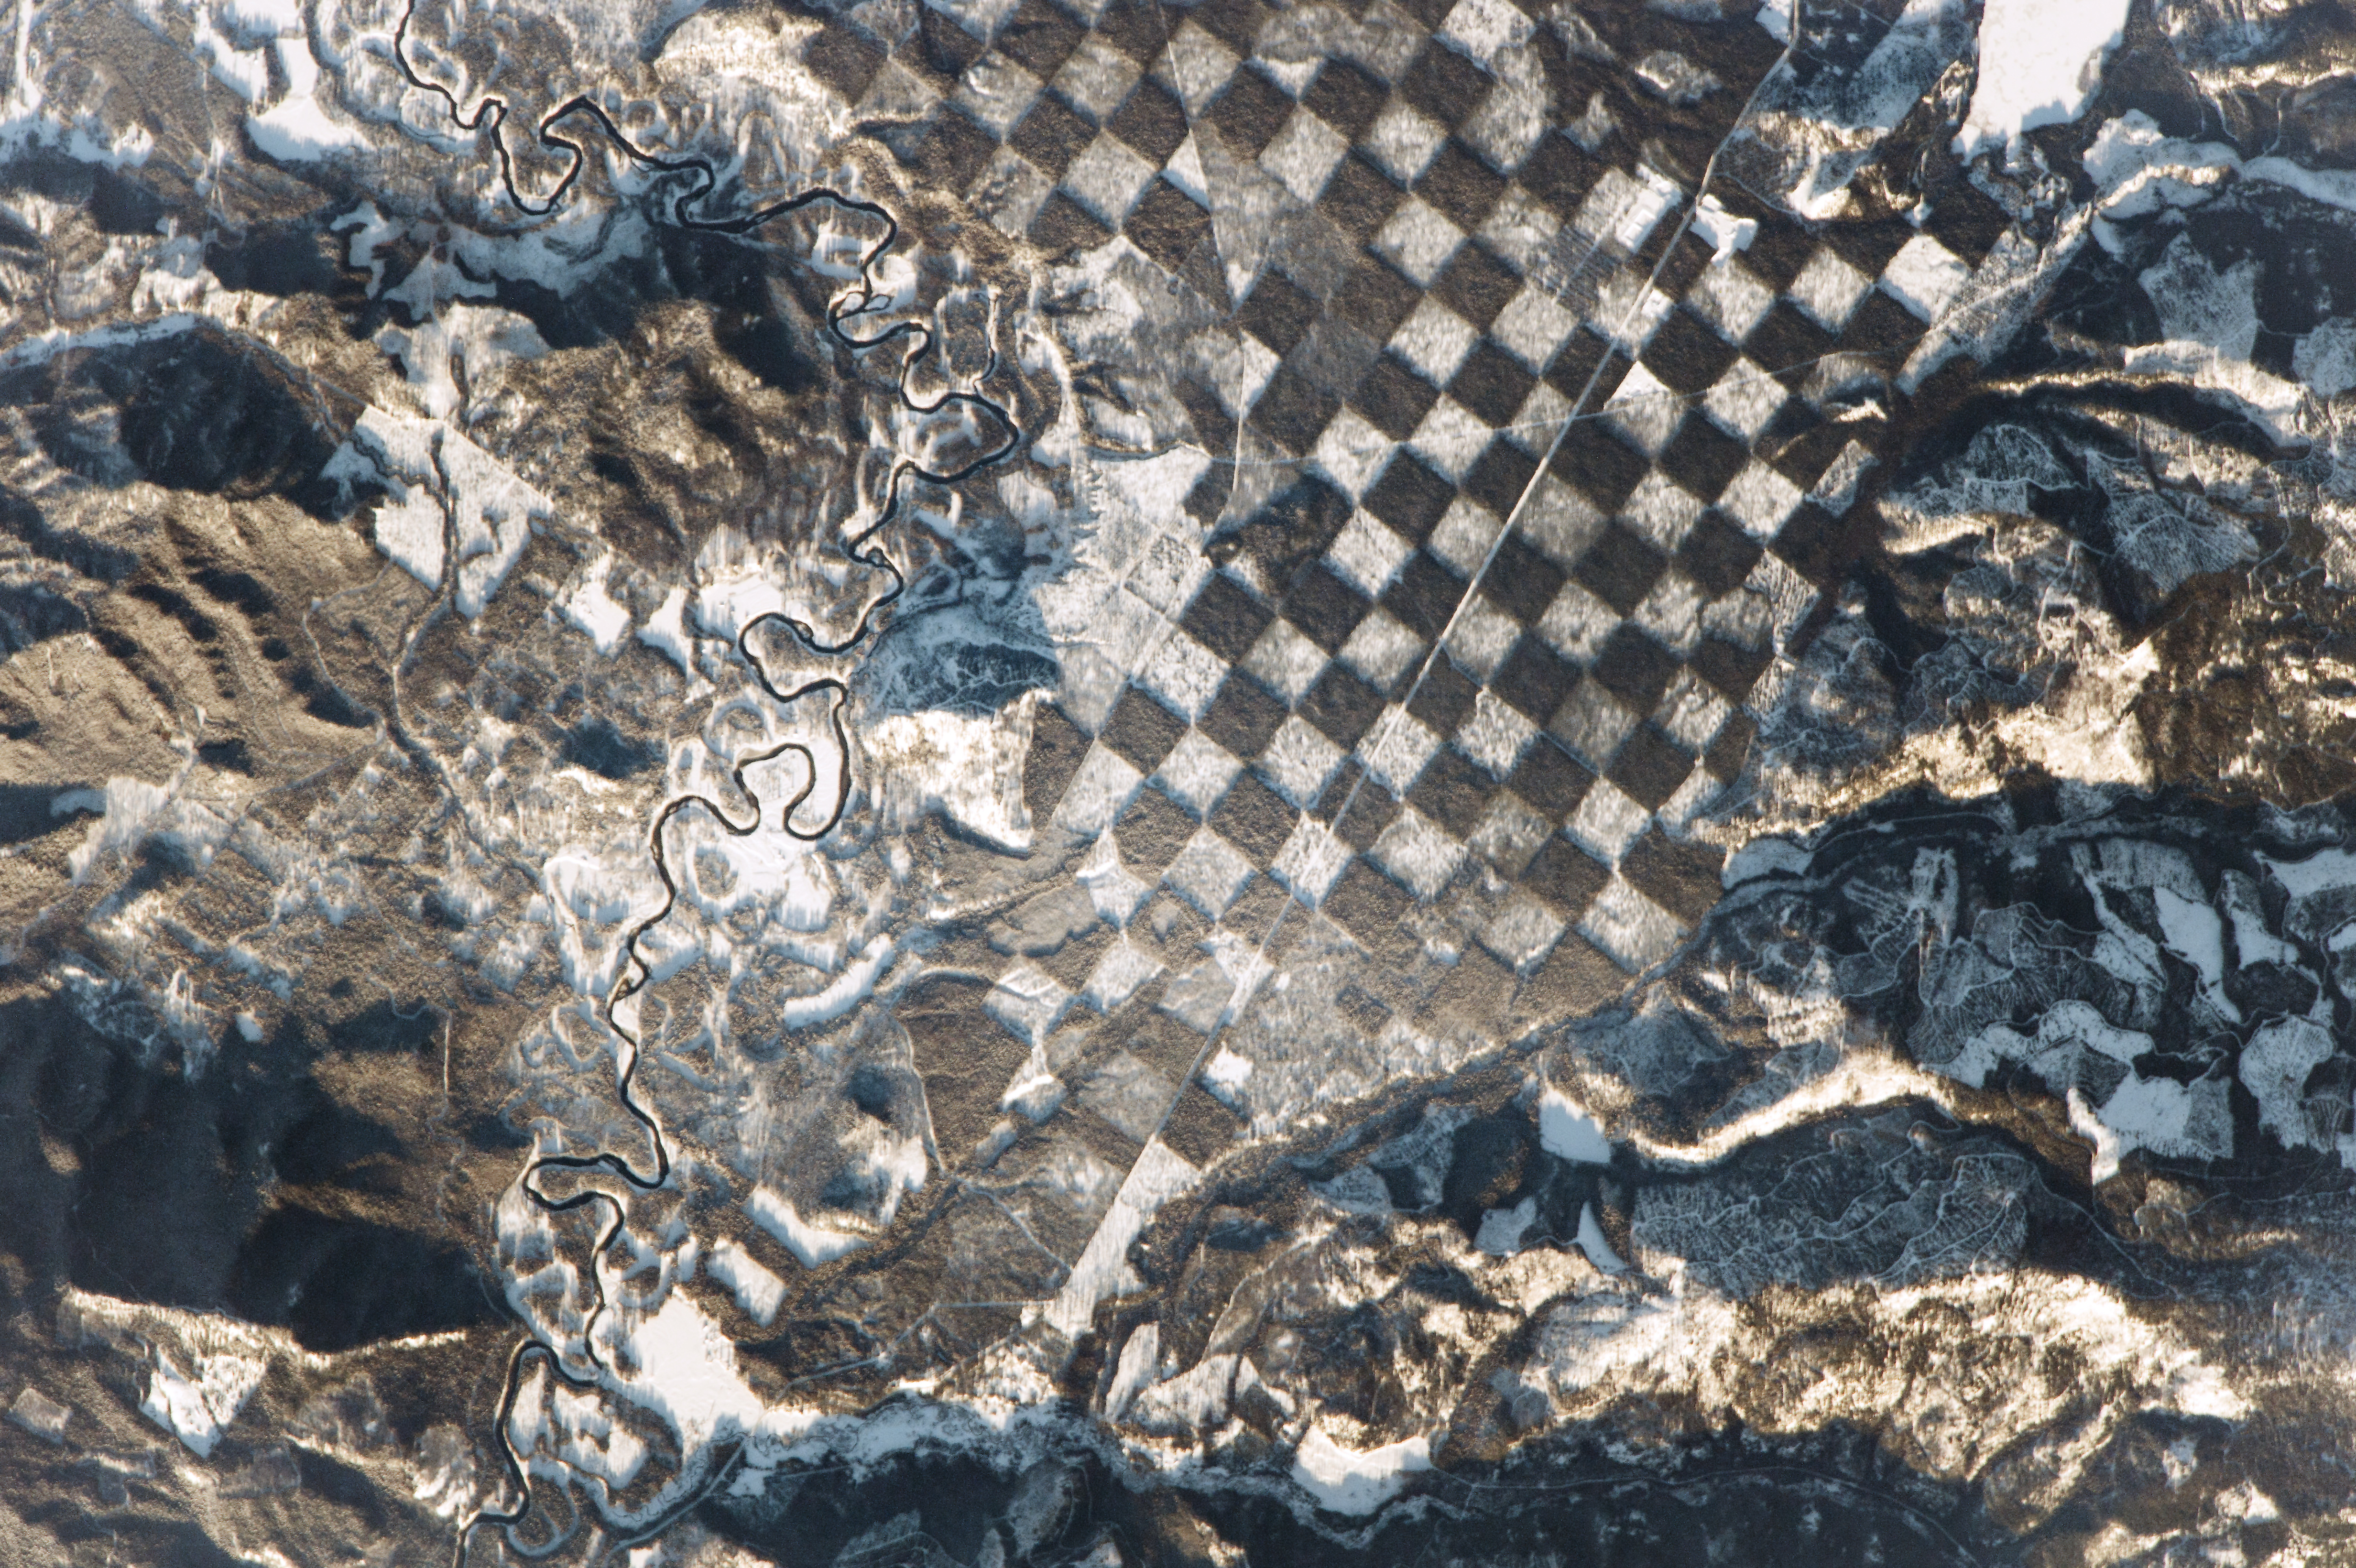 Checkerboard pattern along the Priest River in northern Idaho (Nasa)